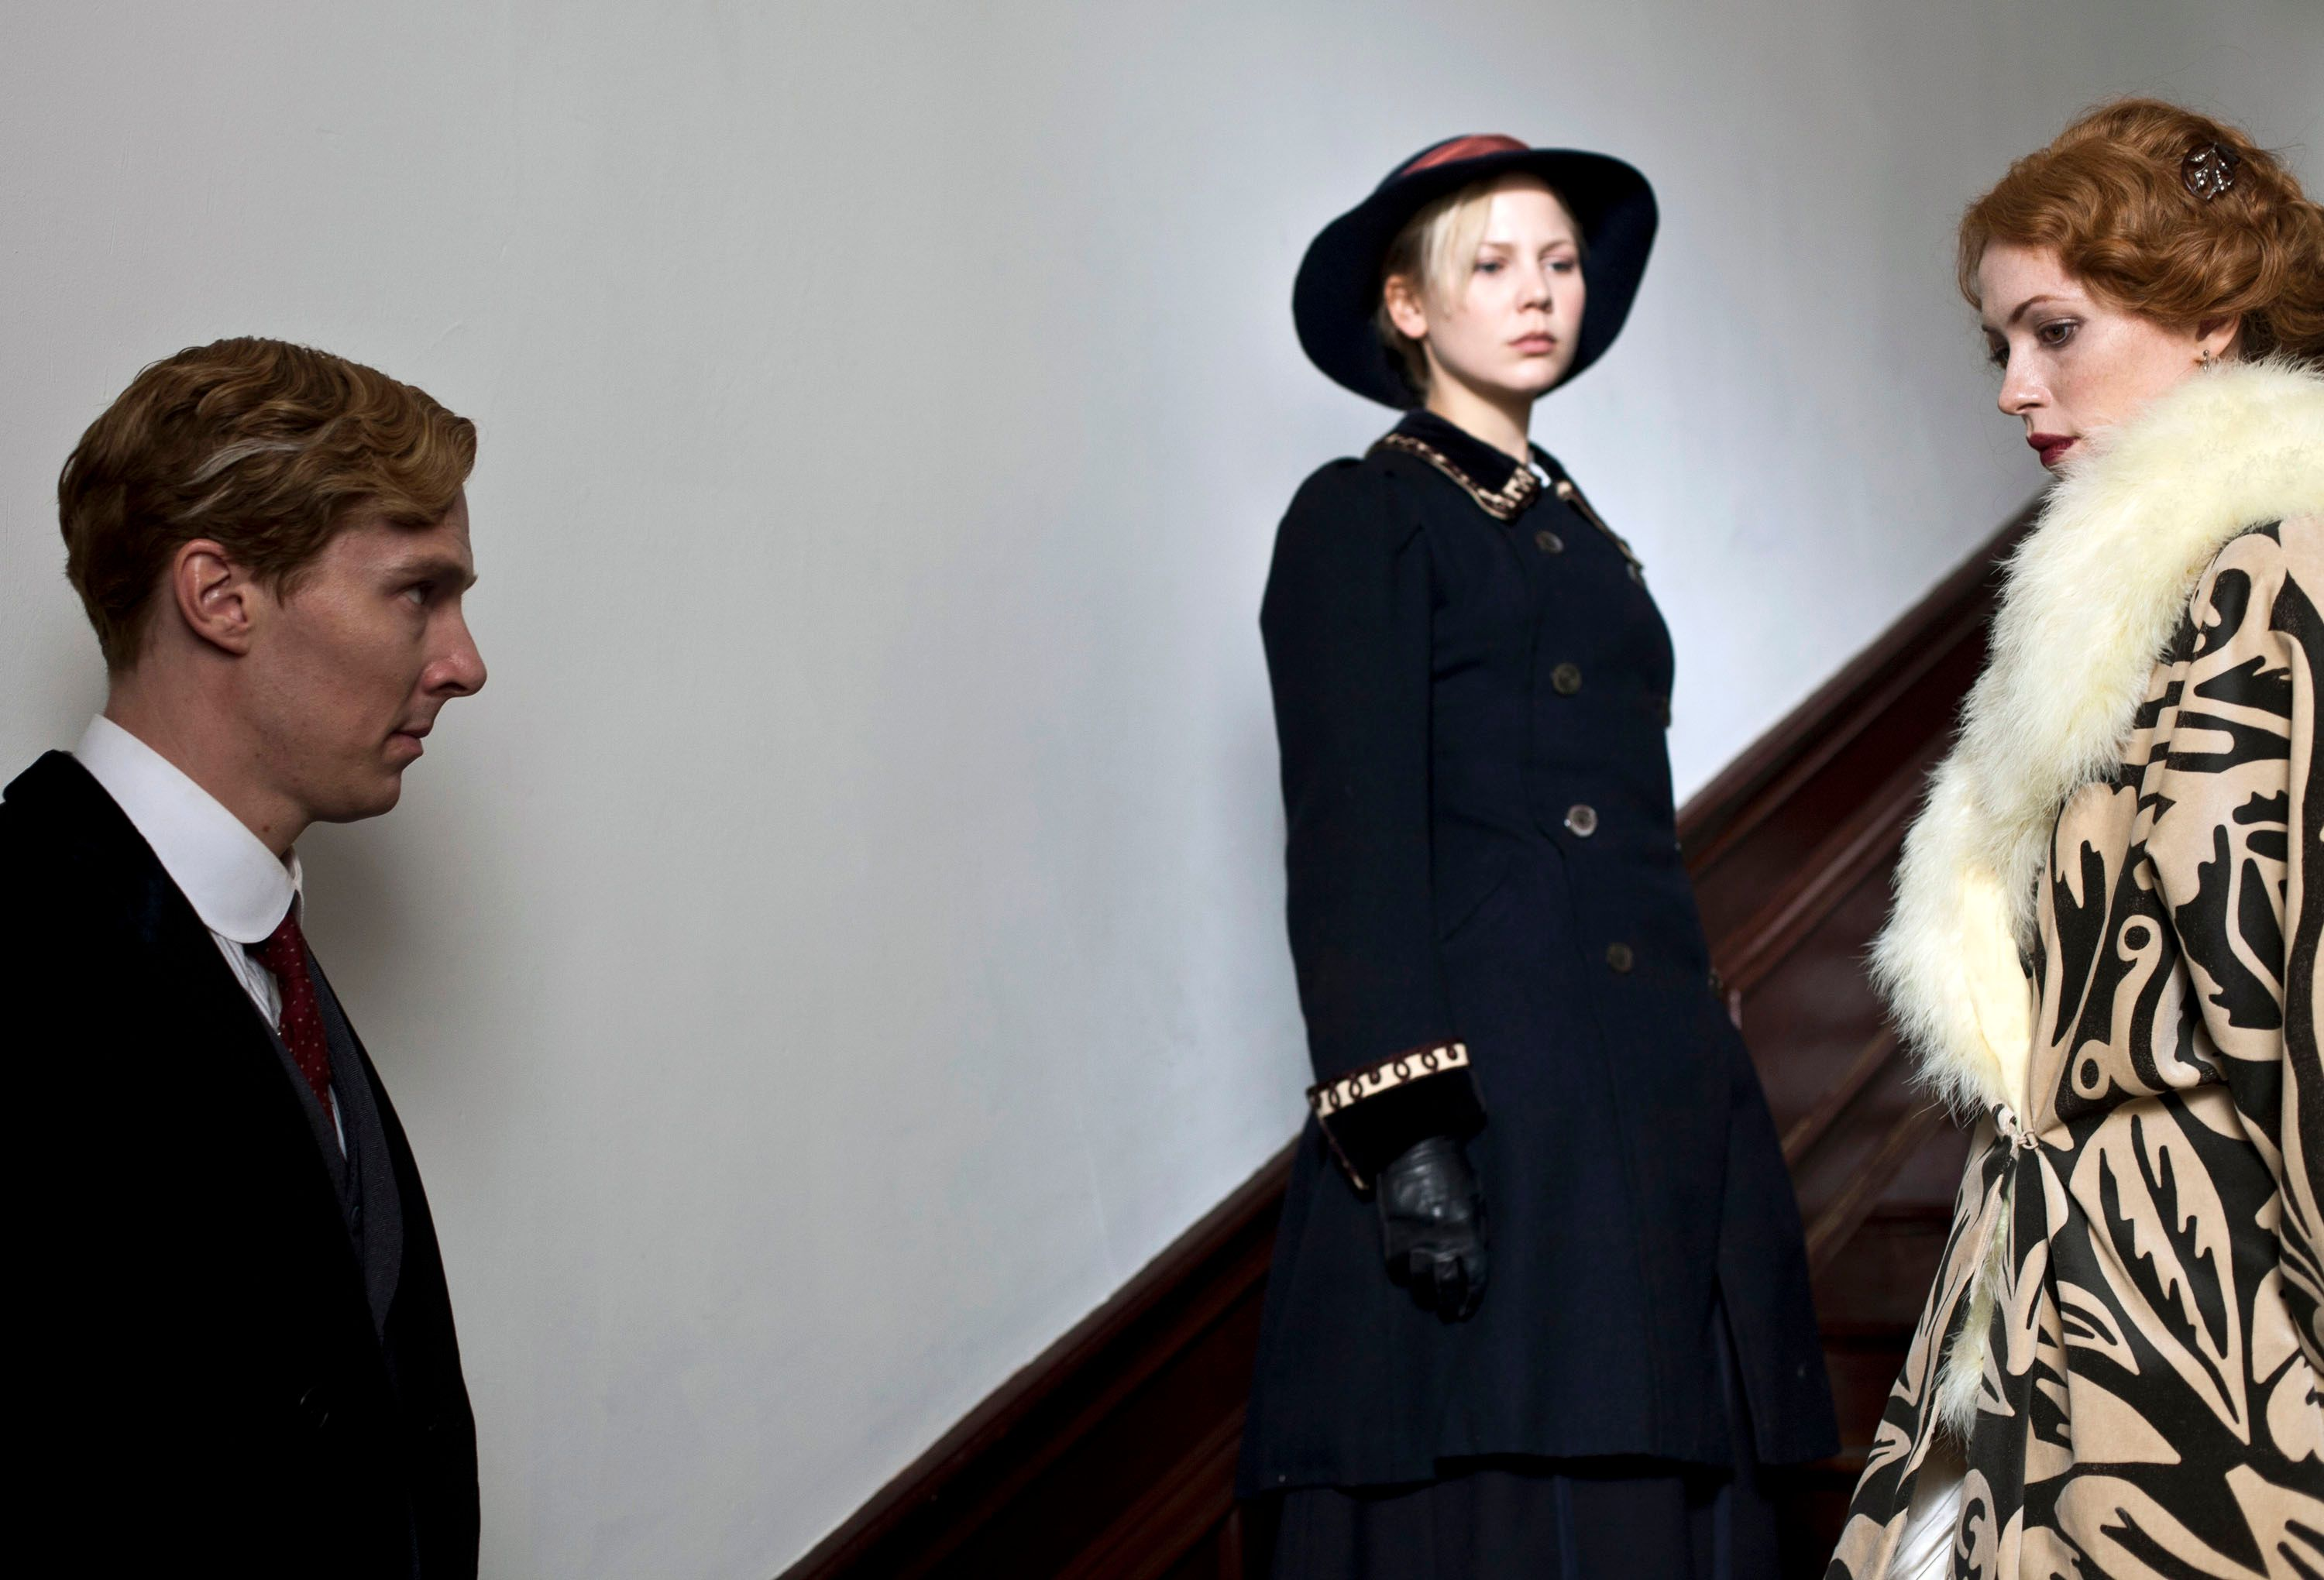 Adelaide clemens parades end - 3 part 7